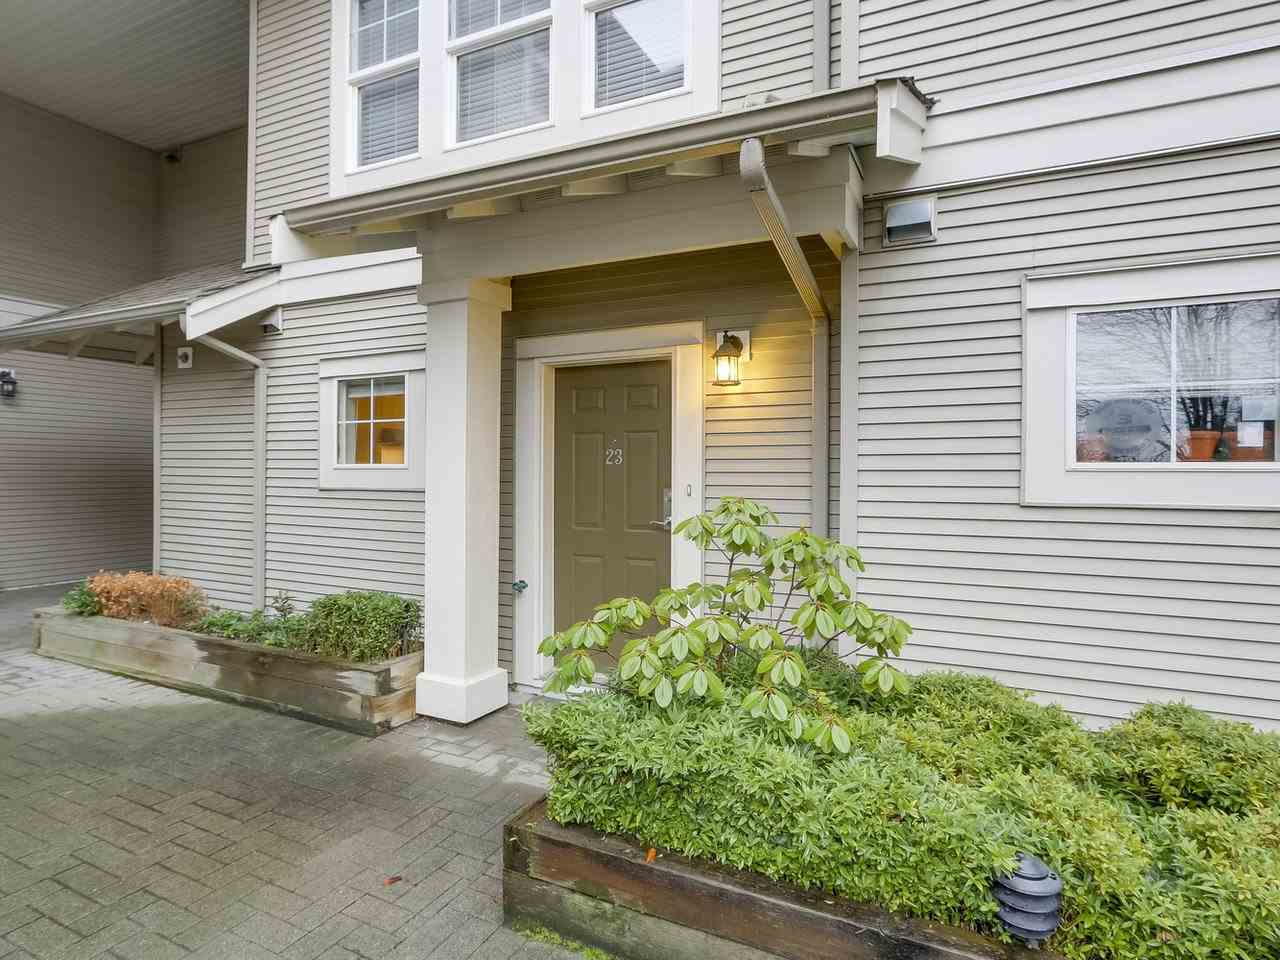 "Main Photo: 23 7179 18TH Avenue in Burnaby: Edmonds BE Townhouse for sale in ""Canford Corner"" (Burnaby East)  : MLS®# R2232002"